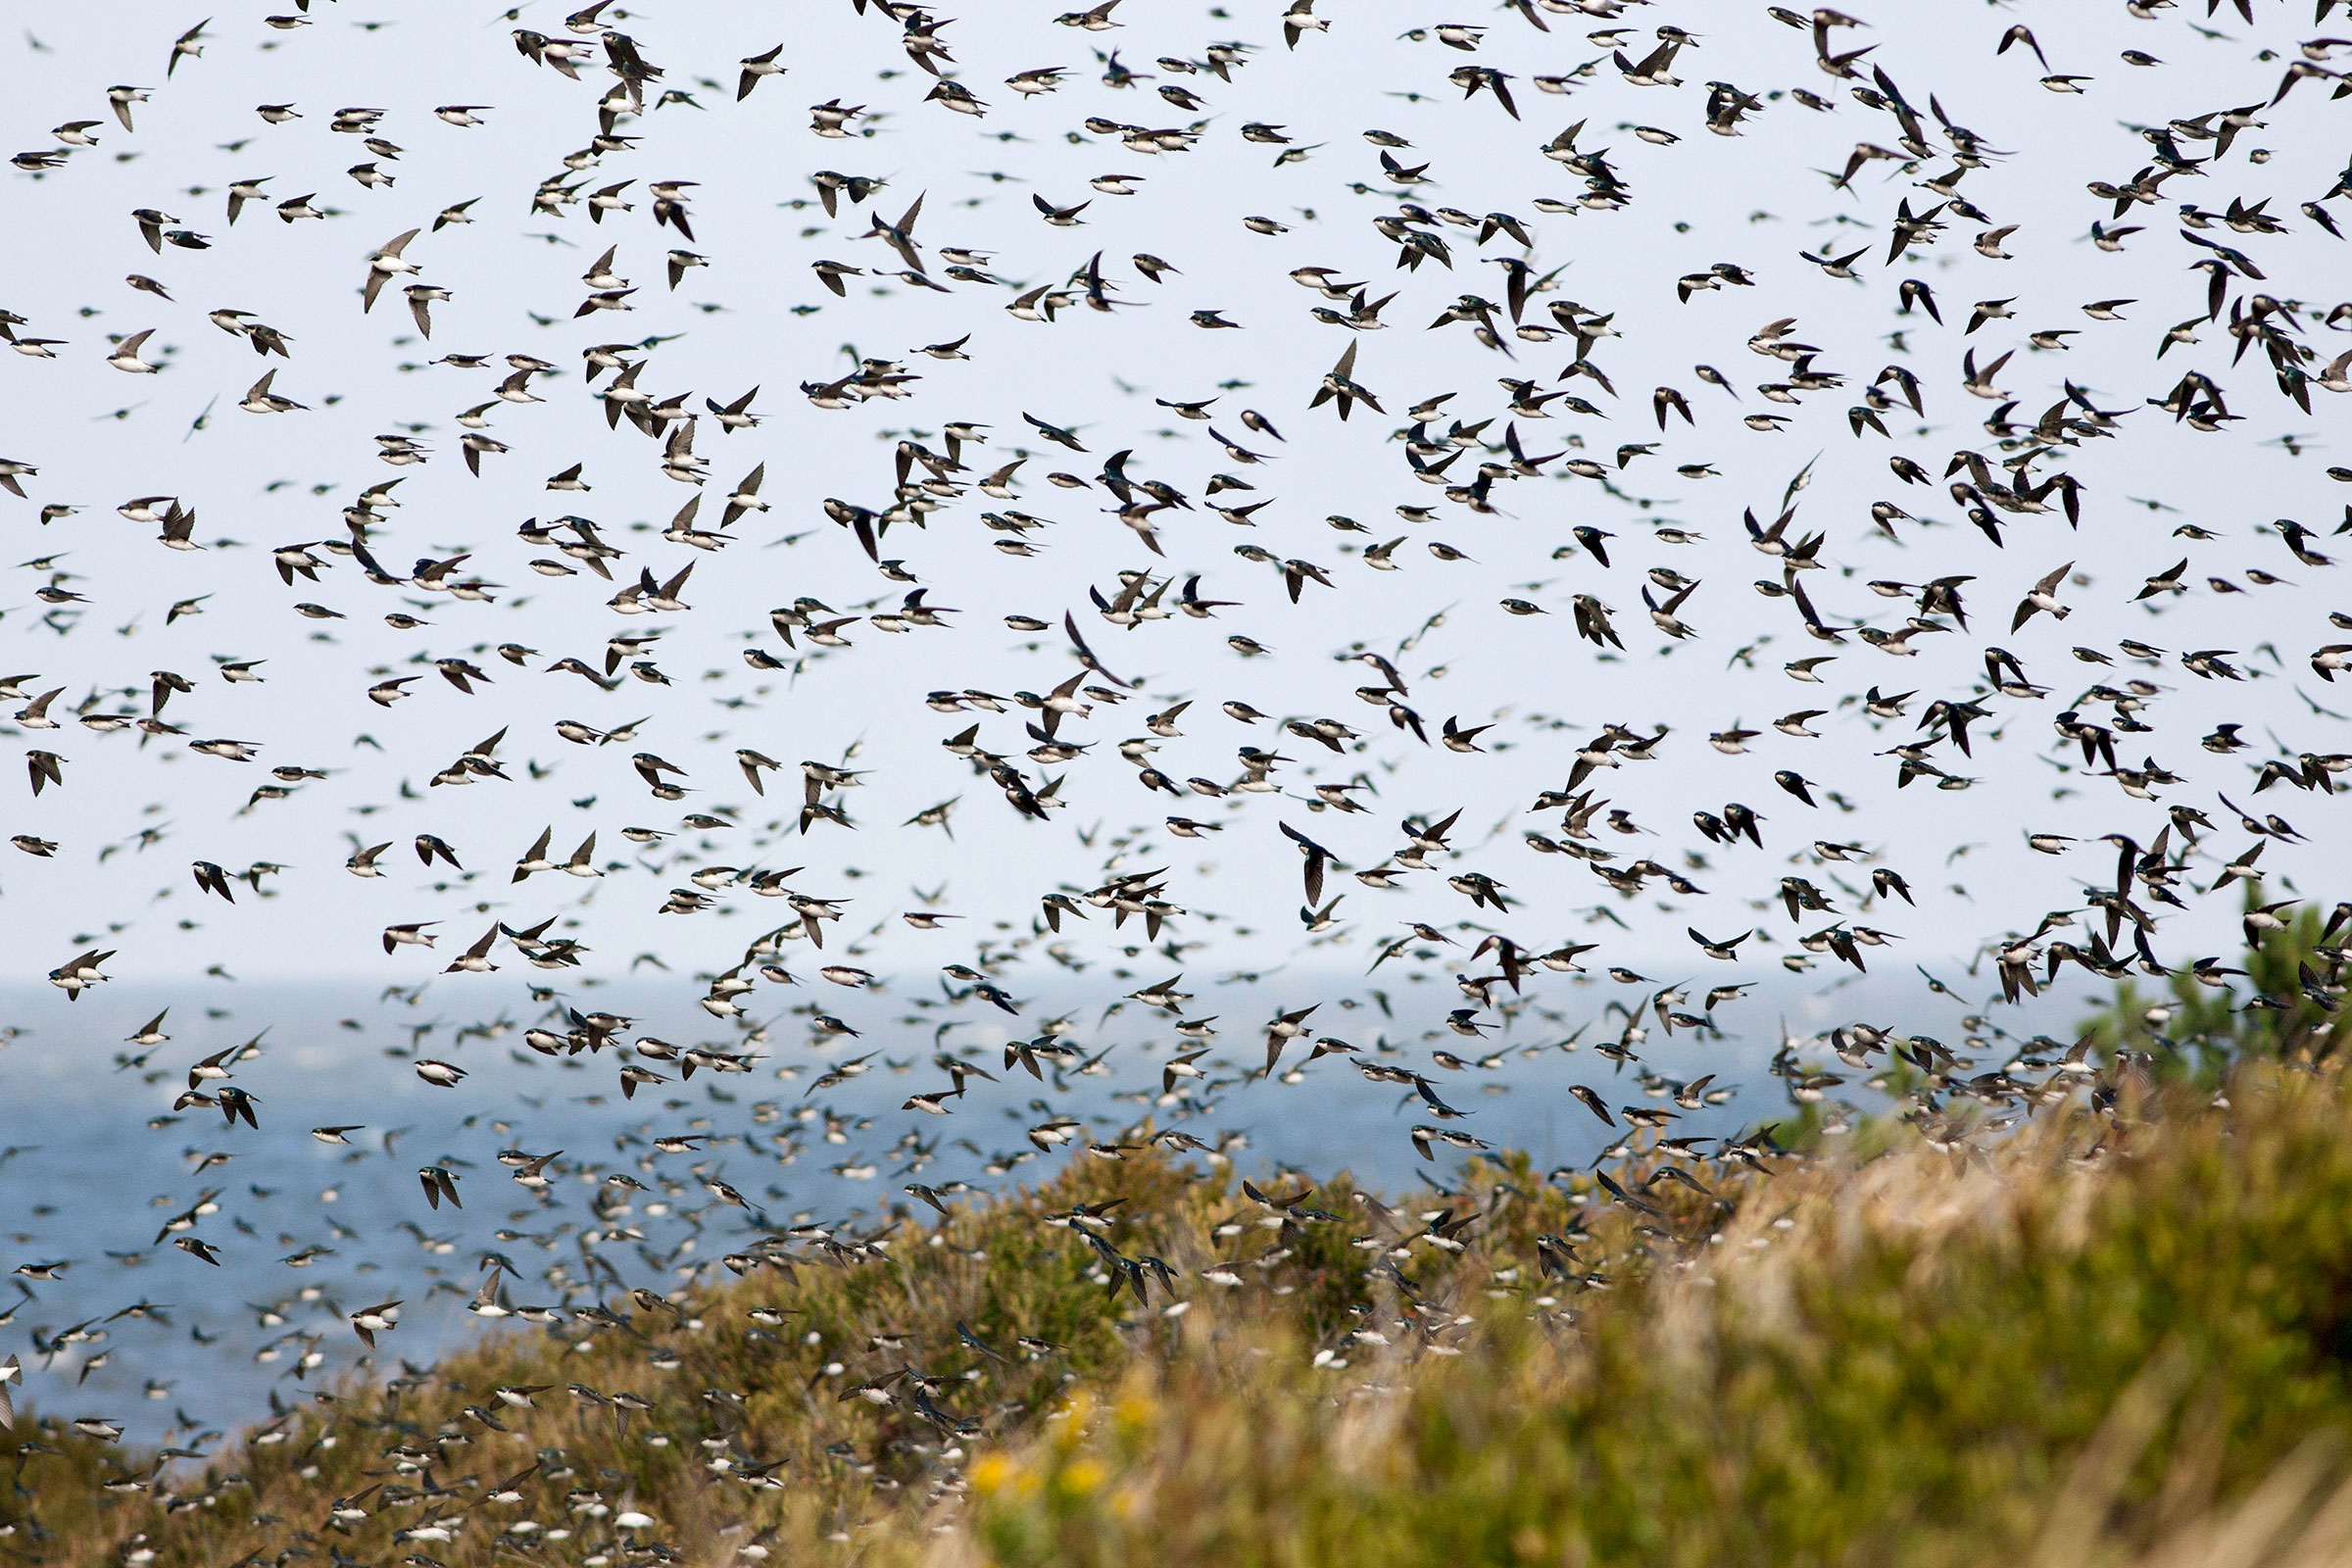 Migrating Tree Swallows at Cape May, NJ. William Leaman/Alamy